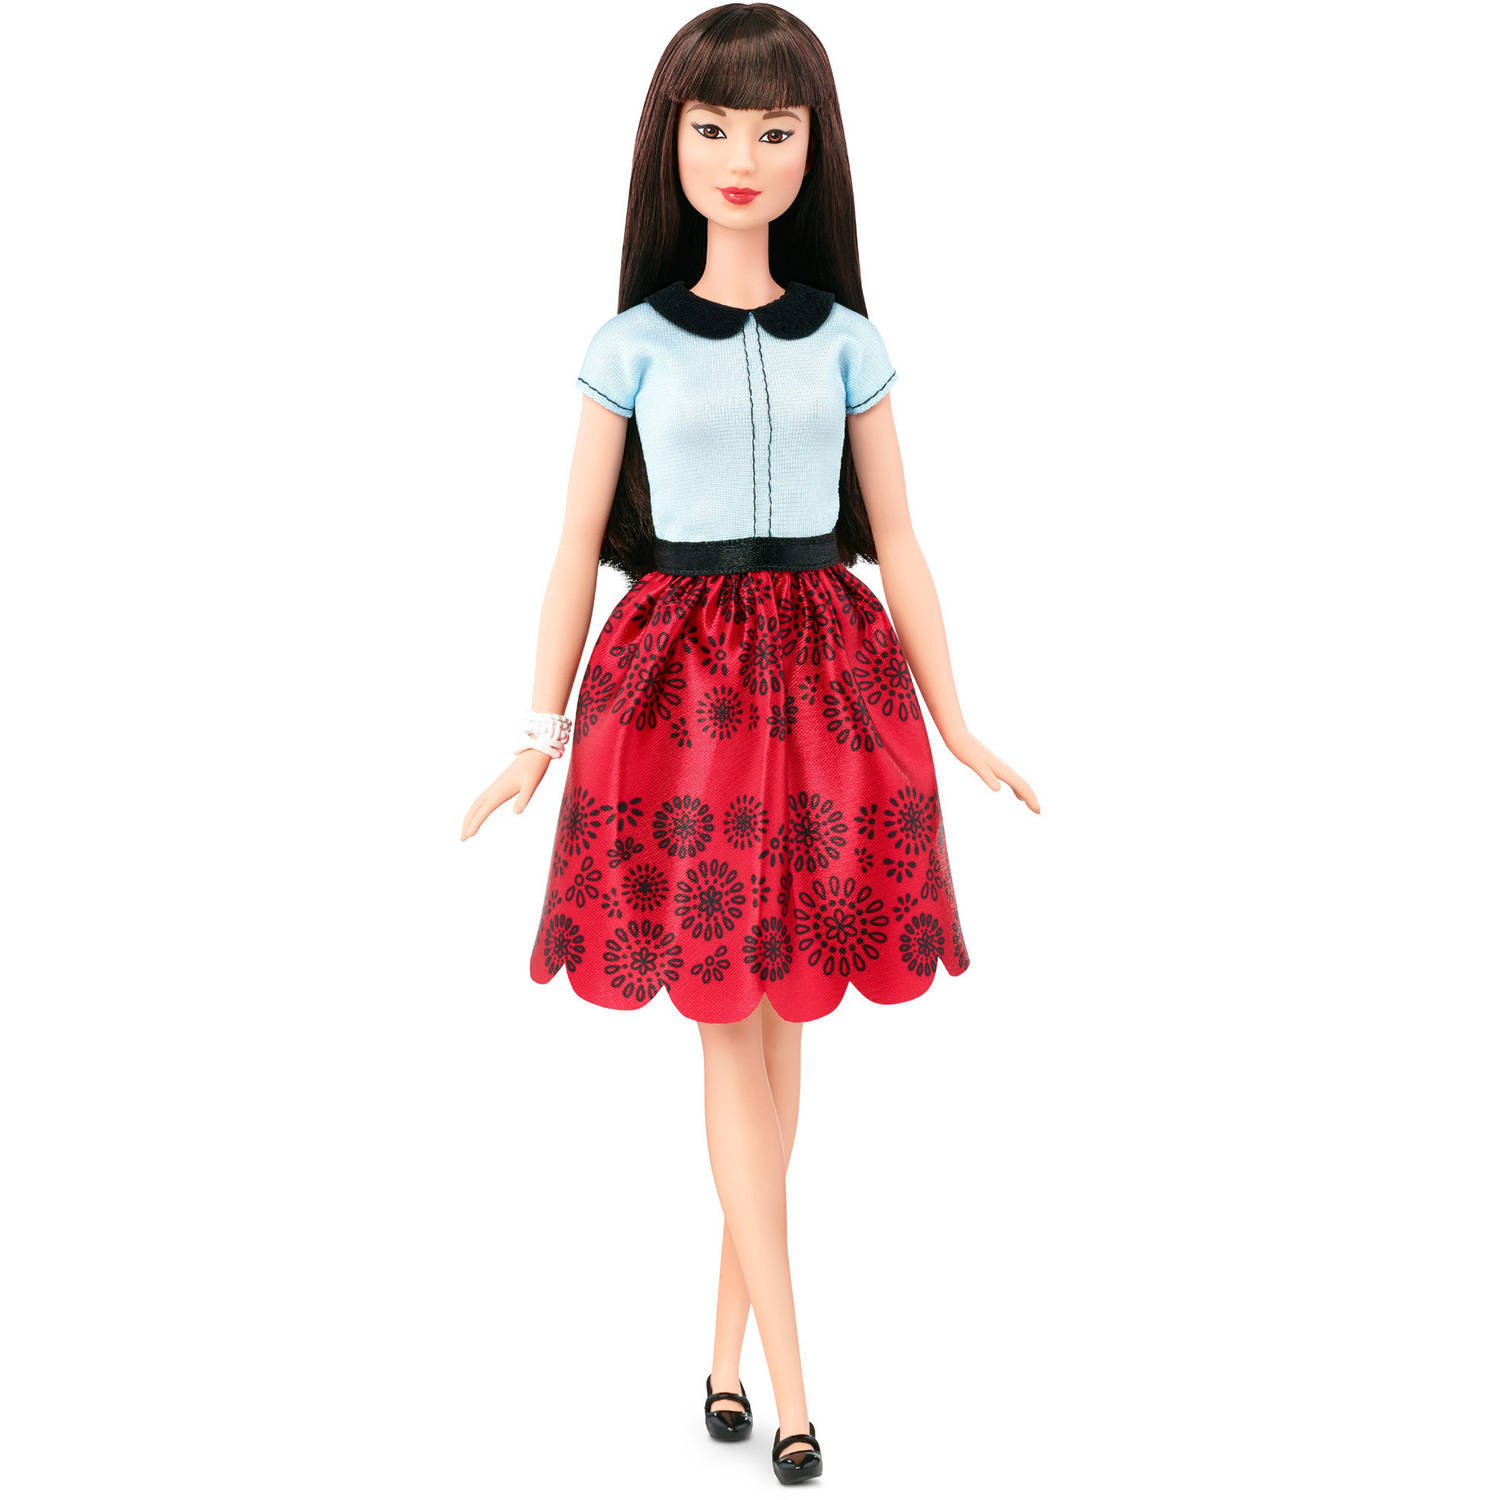 Barbie Fashionistas Doll 19, Ruby Red Floral, Original by MATTEL INC.